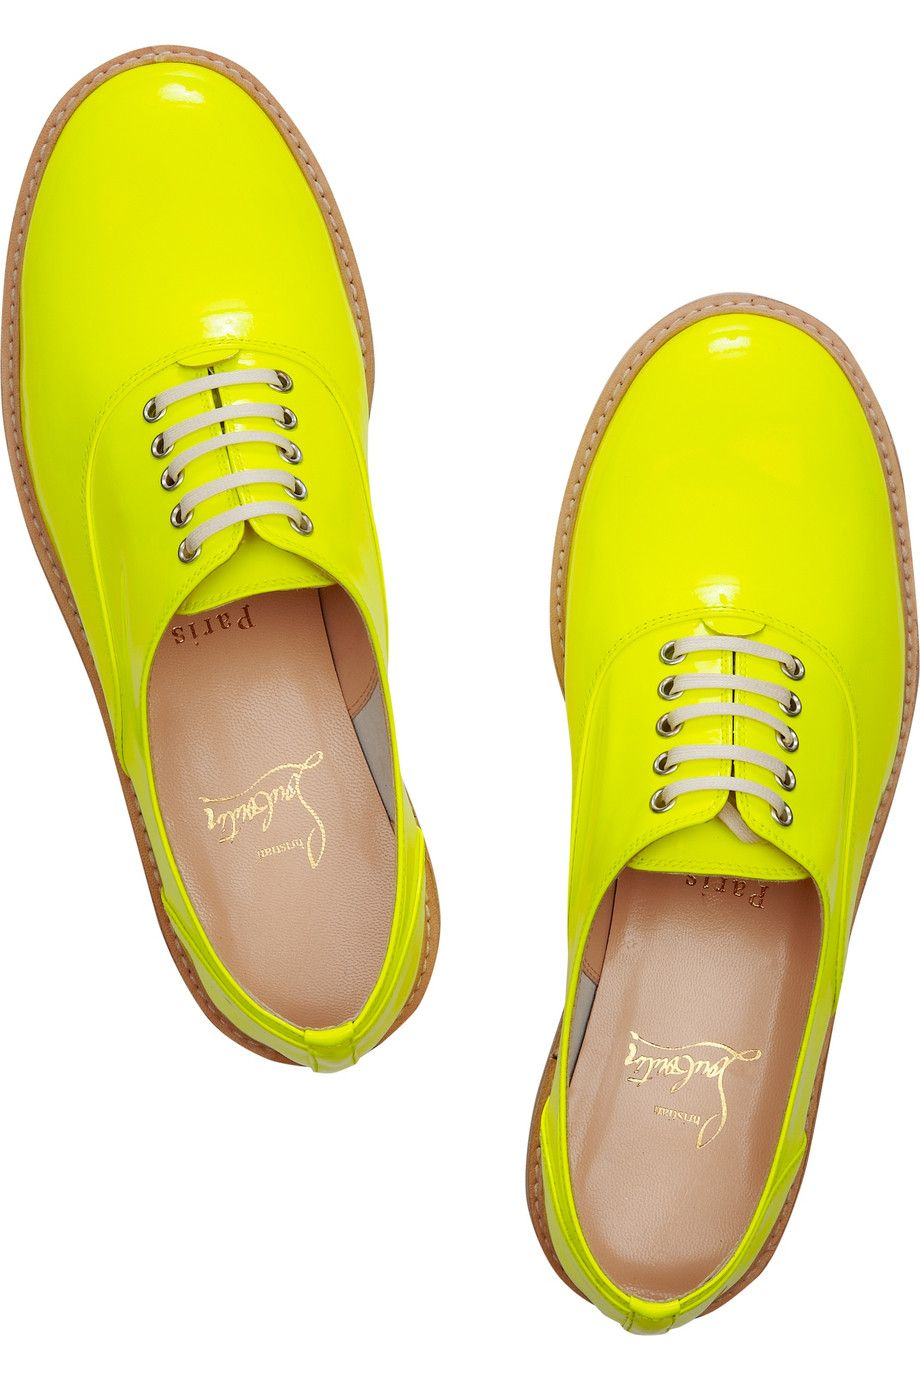 #r29summerstyle | #ChristianLouboutin  Havana patent-leather brogues for $695. NET-A-PORTER.COM